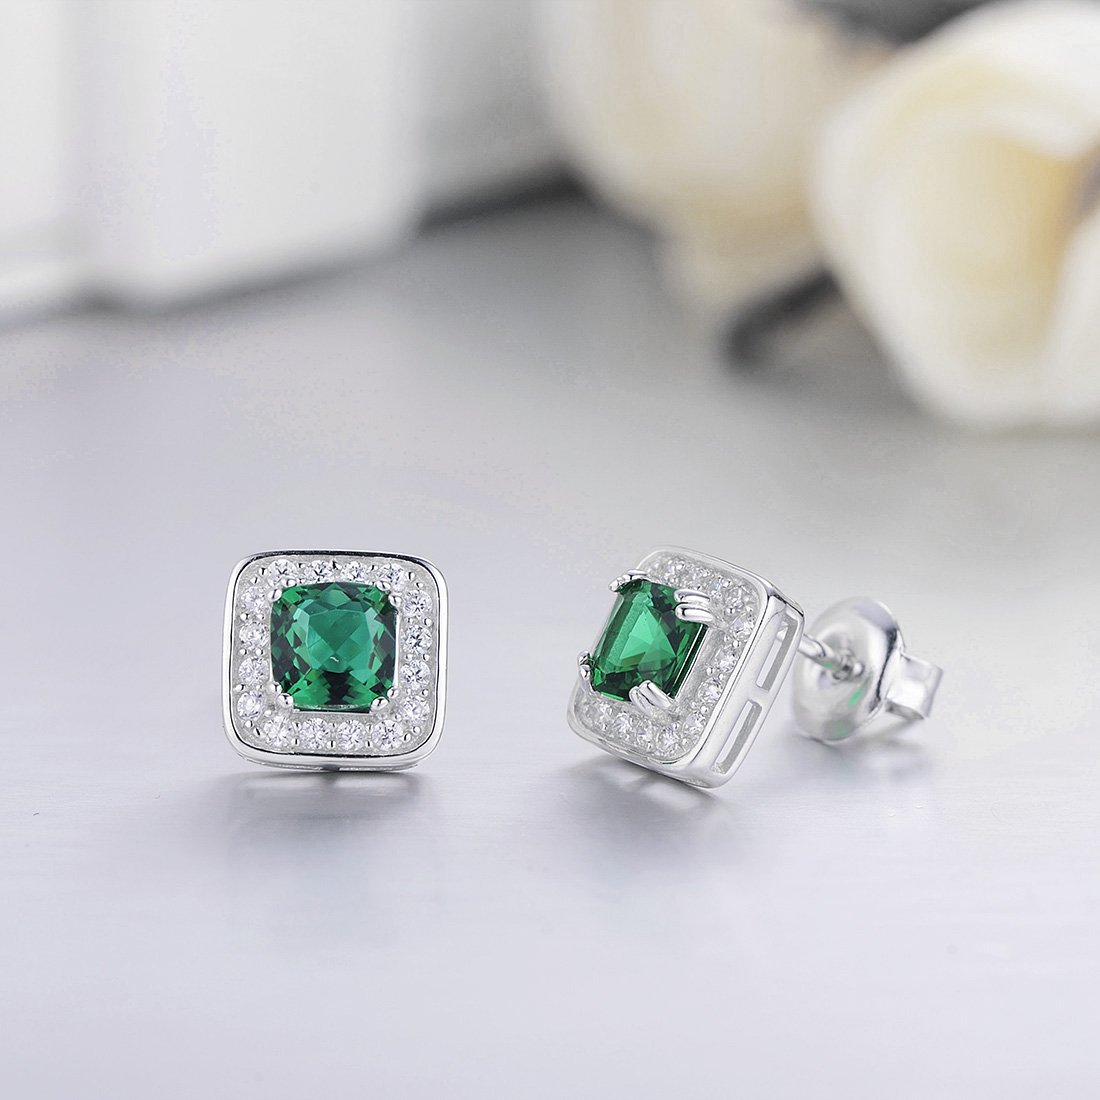 Santuzza Stearling Silver Halo Style 1 Ct Size Emerald Color Stone Earrings Crystal Stone CZ Fashion Jewelry